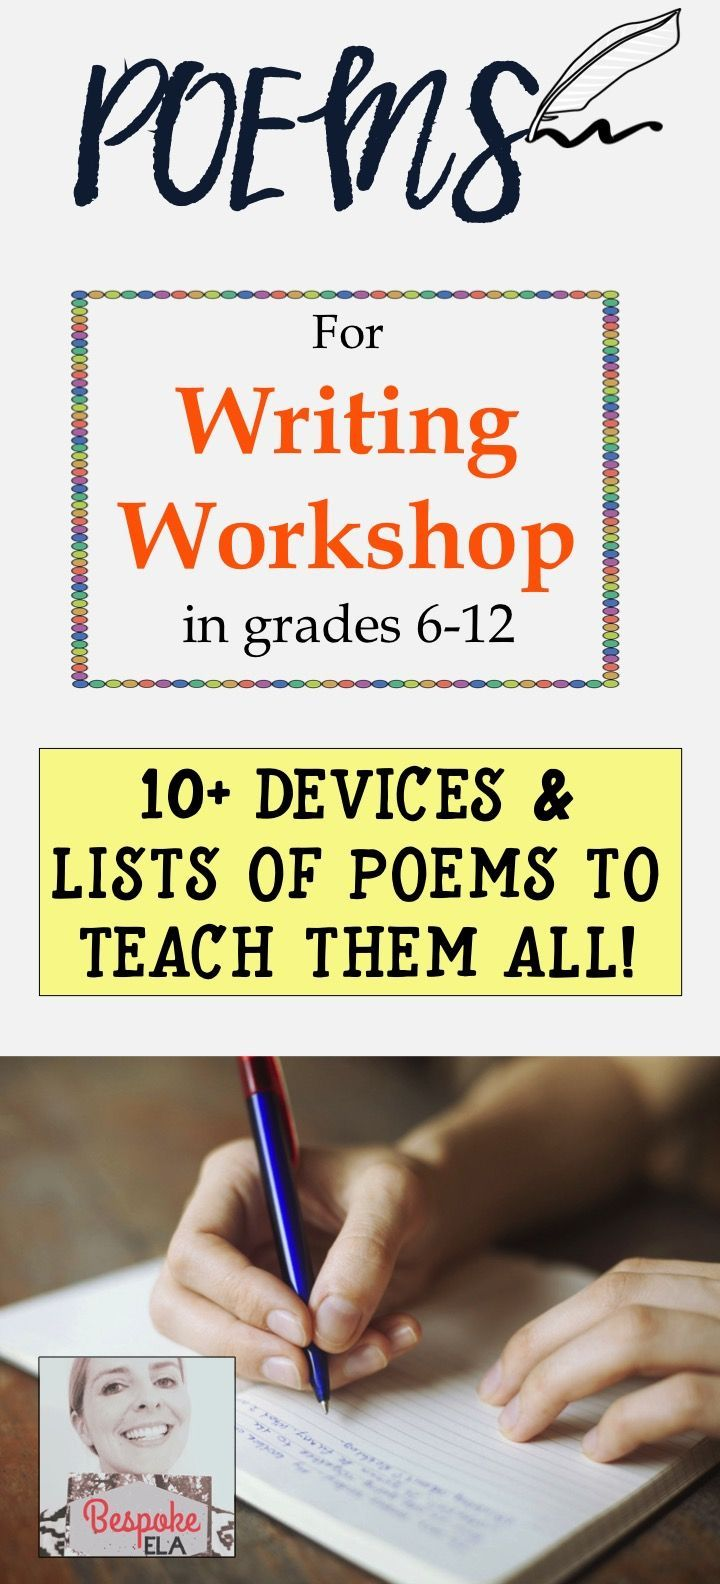 Poetry For Writing Workshop In Grades 612: 10+ Devices & Poems To Model  Them All!